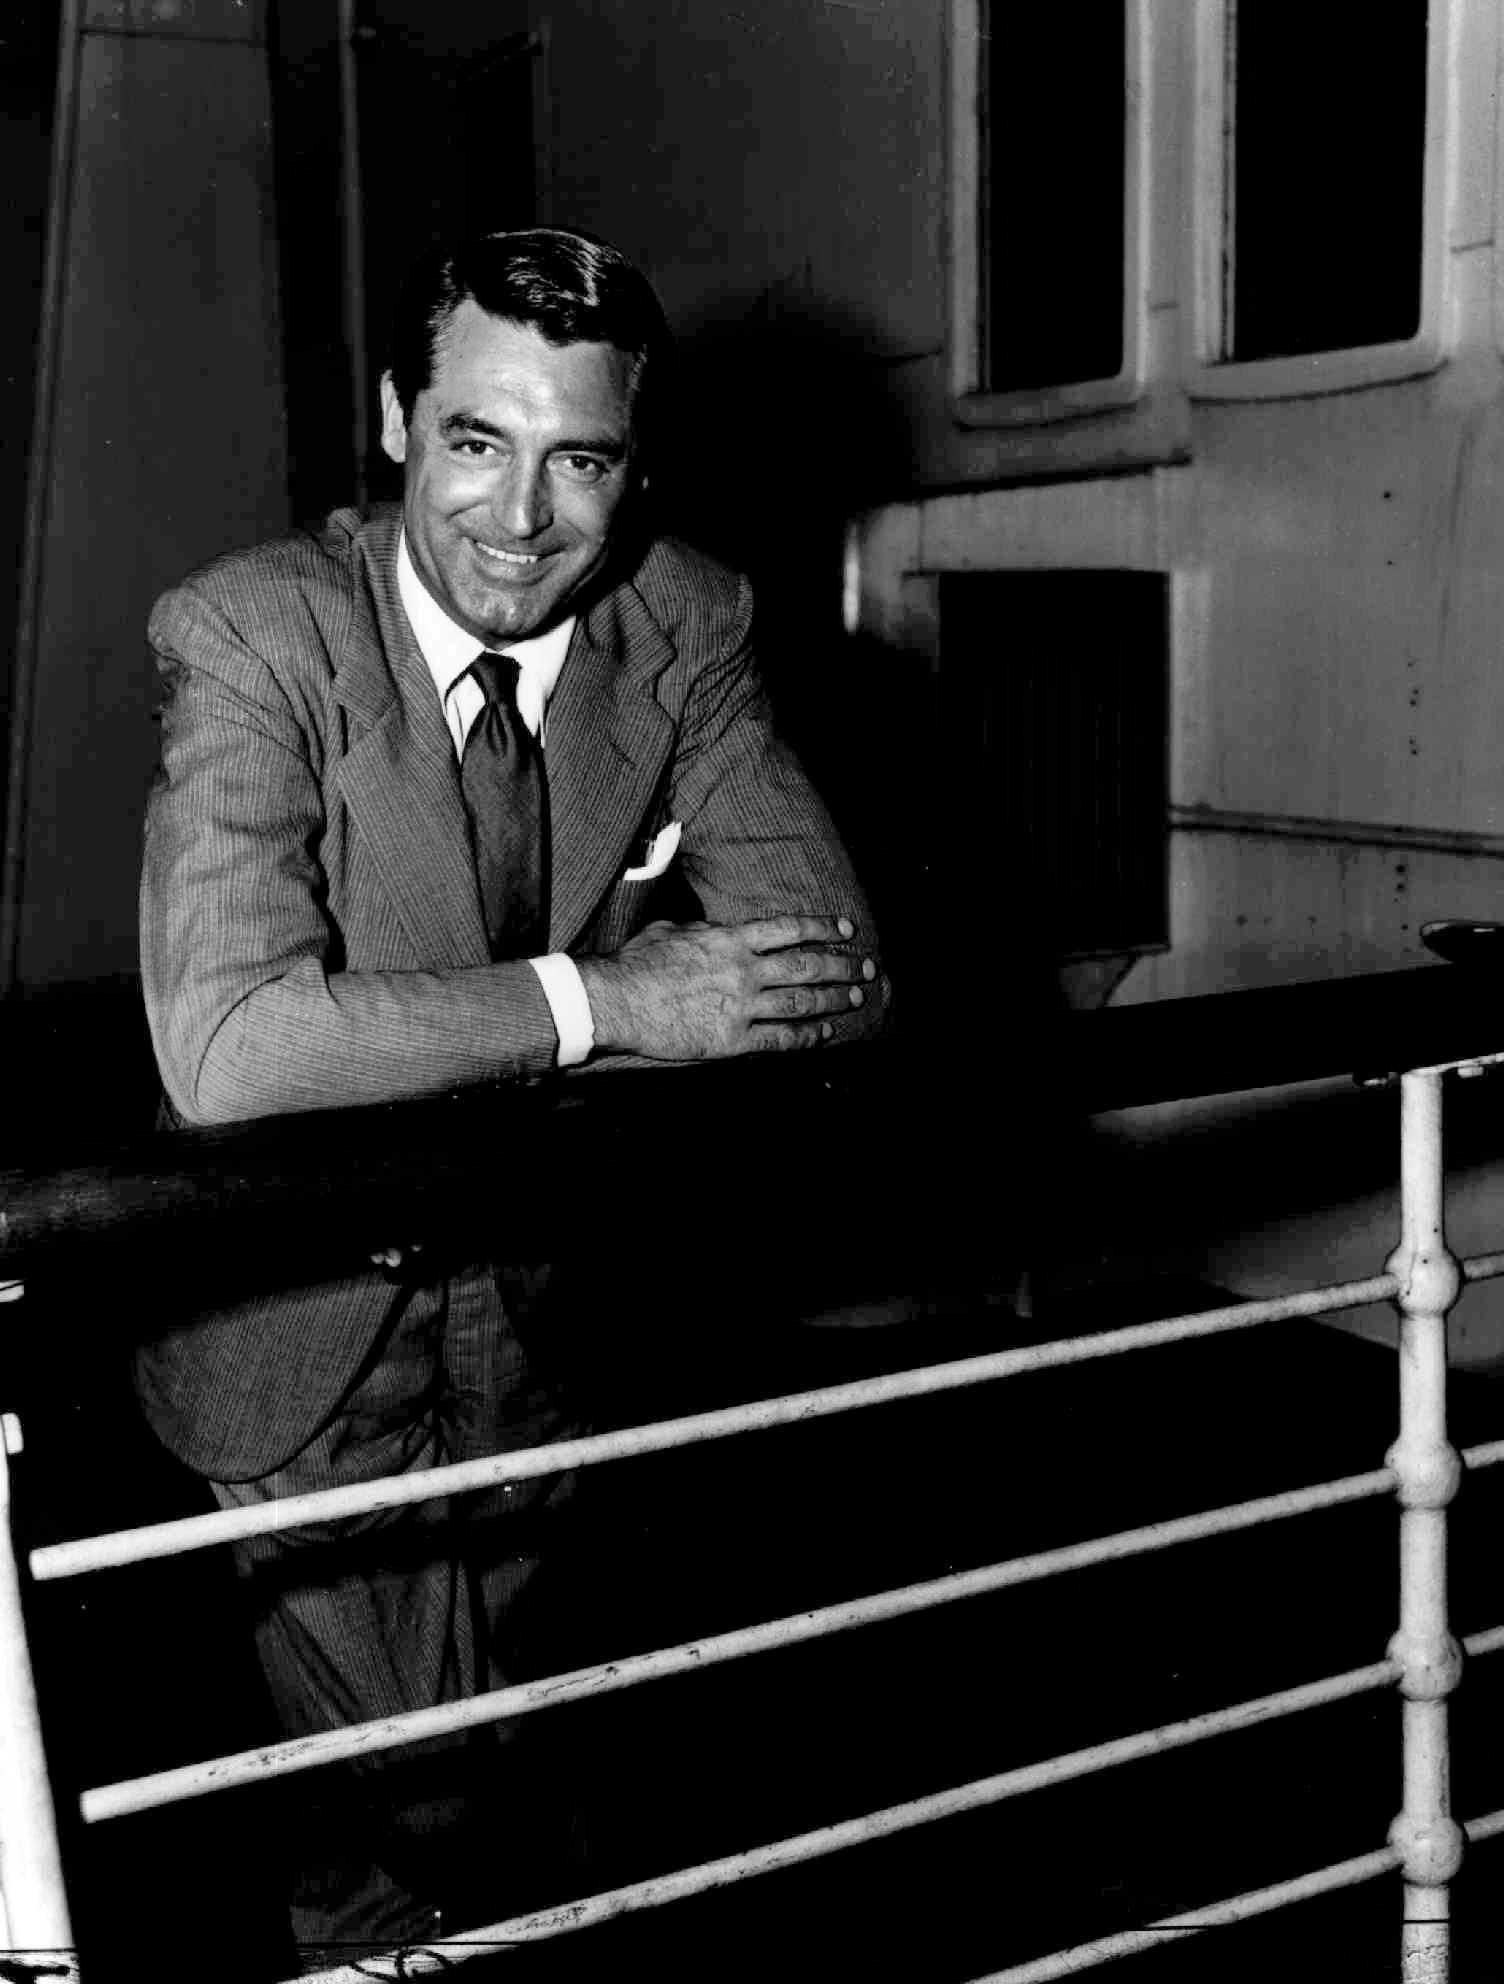 Actor Cary Grant as he arrives in New York City aboard the Queen Mary liner.